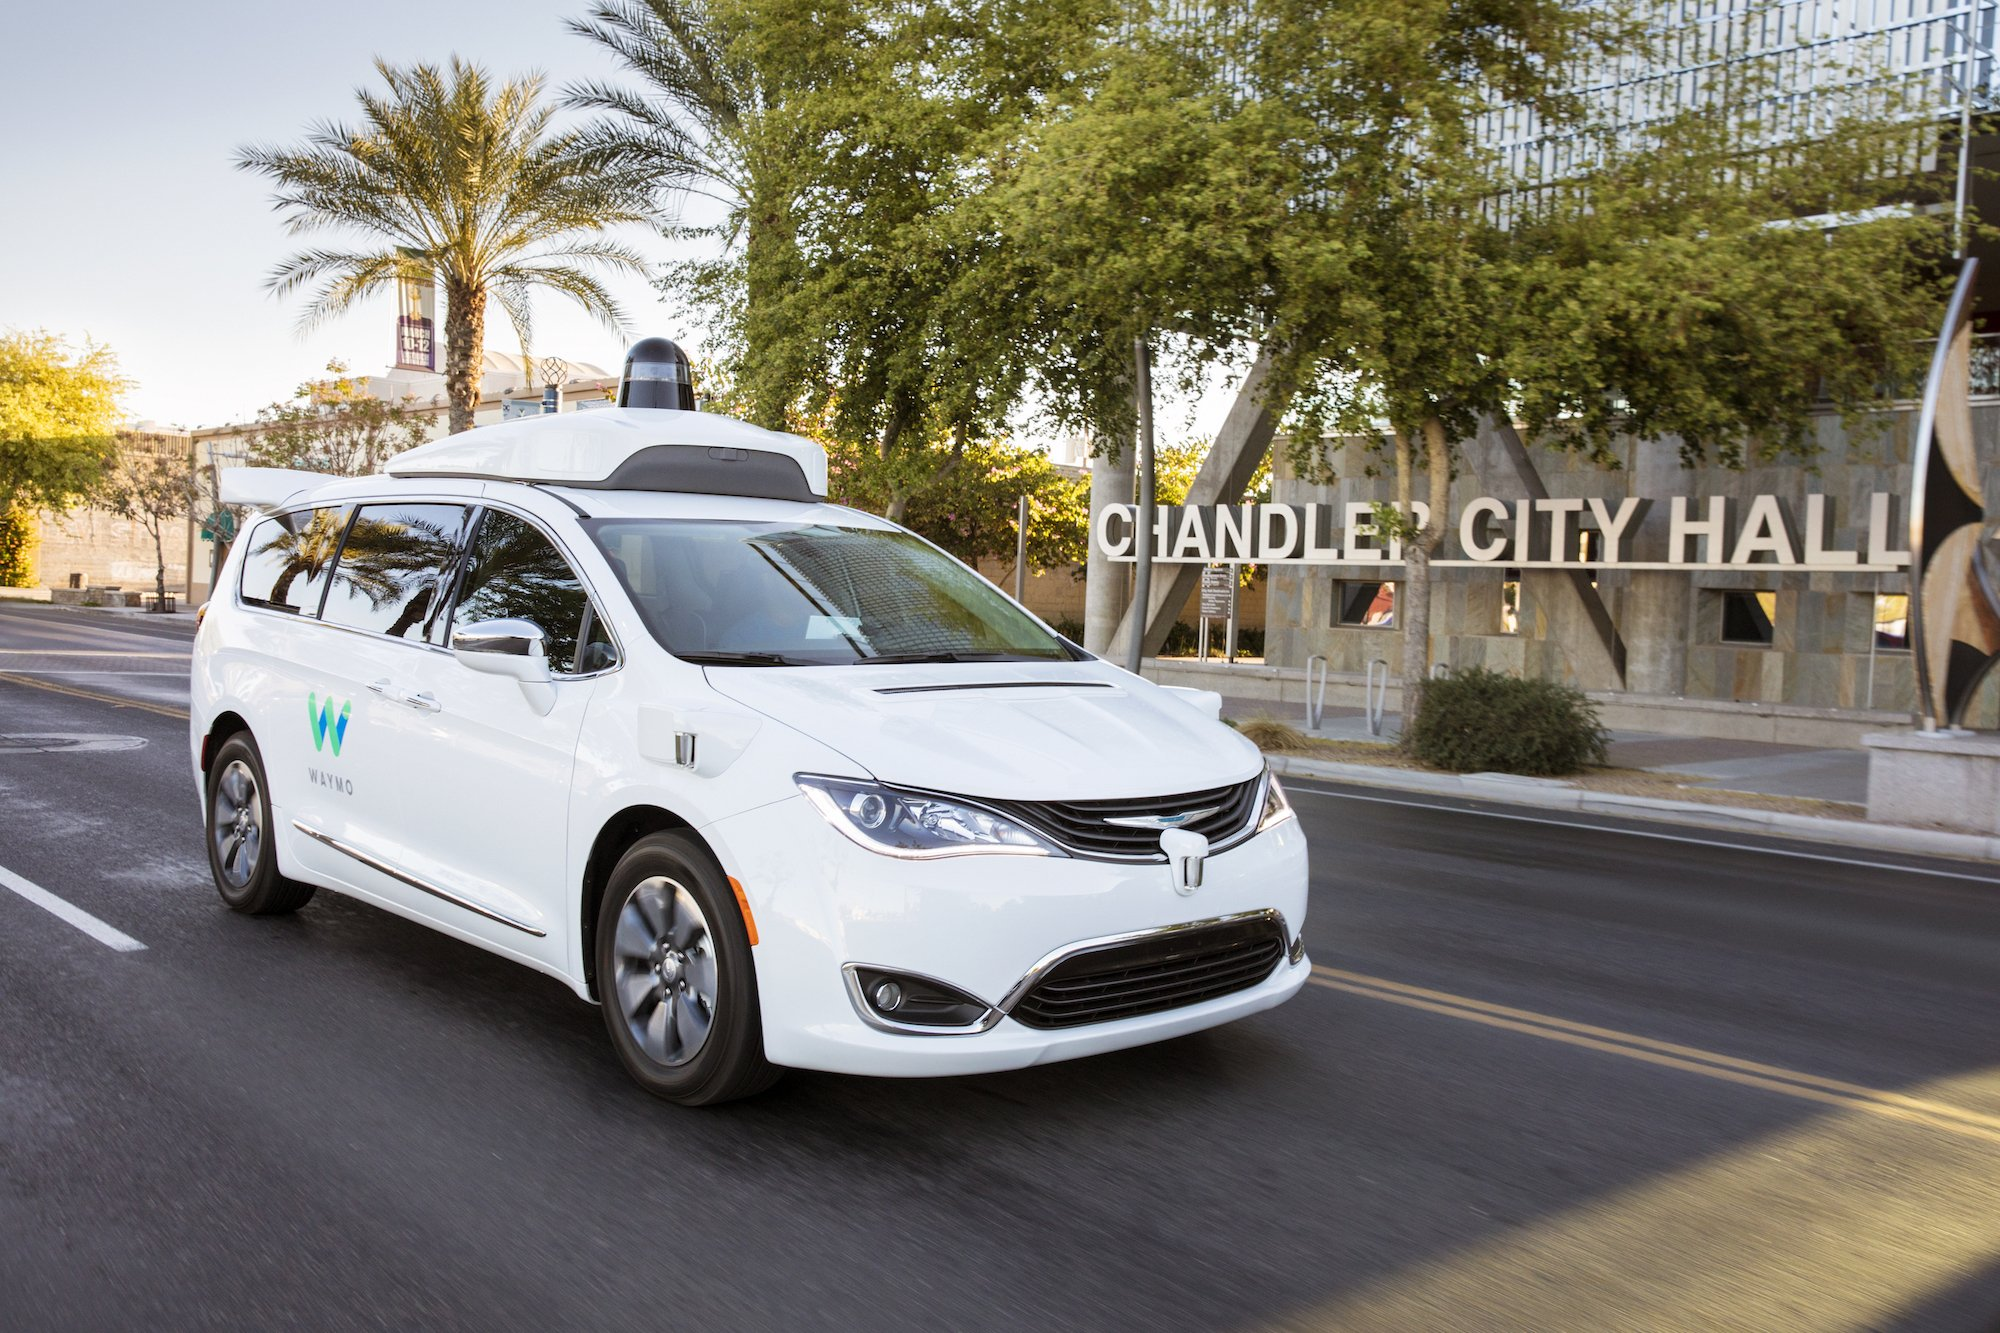 Waymo teams with MADD and others on self-driving education https://t.co/p0zFAdJLhw by @etherington https://t.co/zcXb4pVKsX